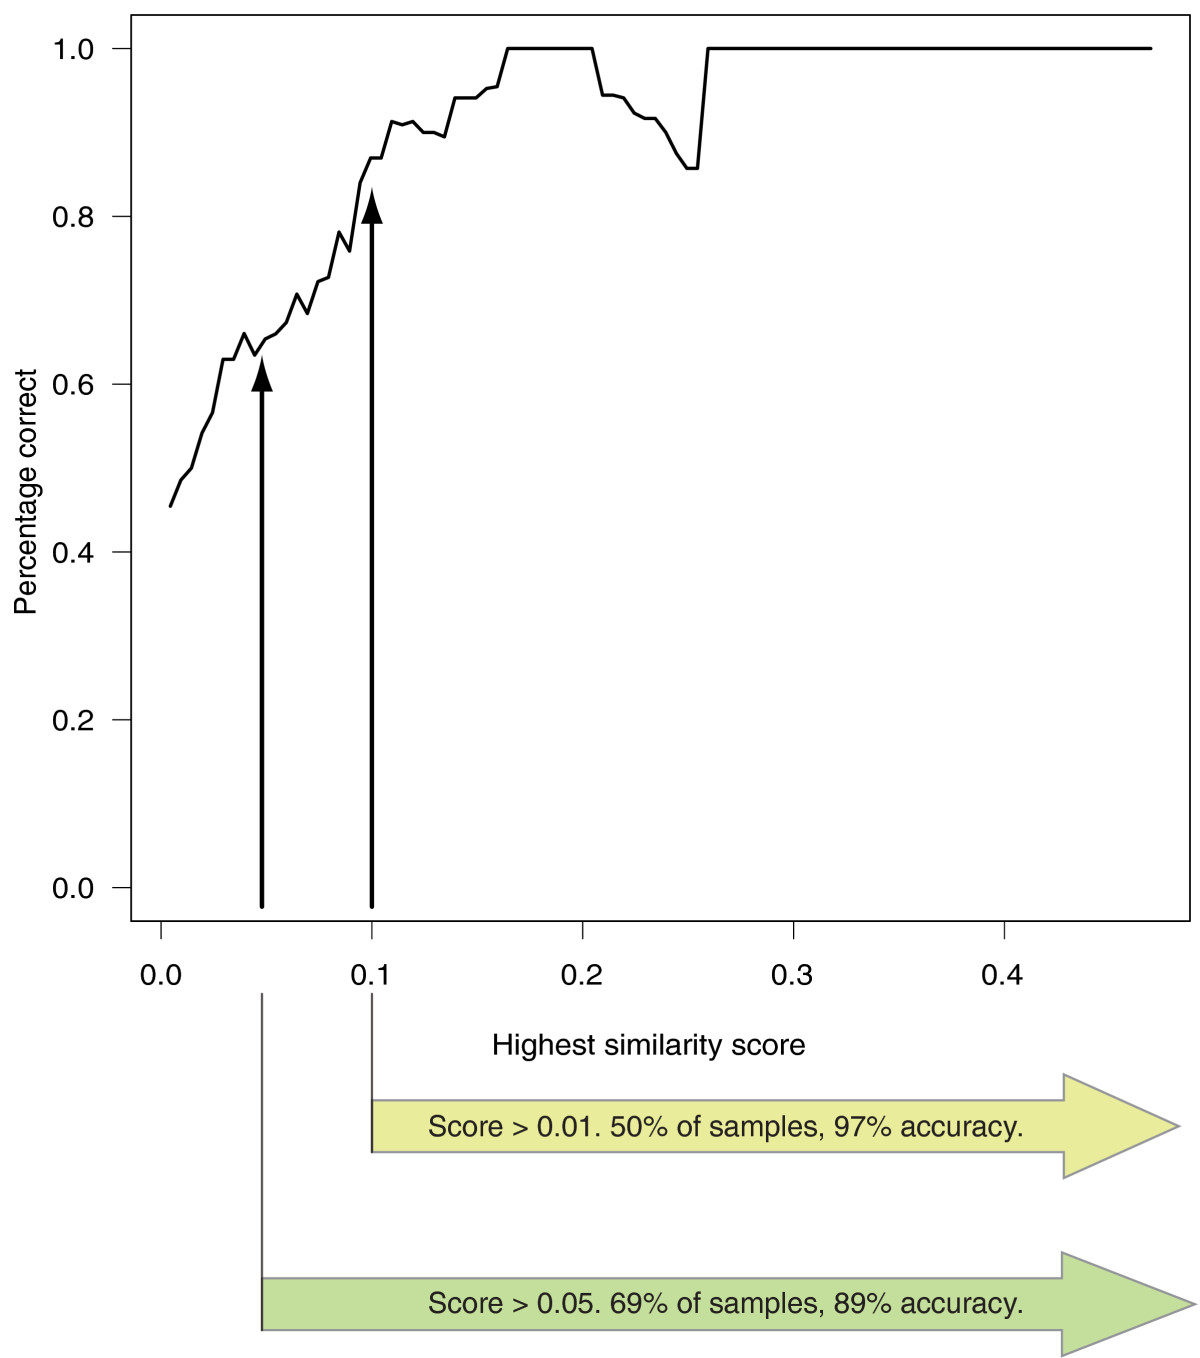 https://static-content.springer.com/image/art%3A10.1186%2Fgm279/MediaObjects/13073_2011_Article_288_Fig1_HTML.jpg